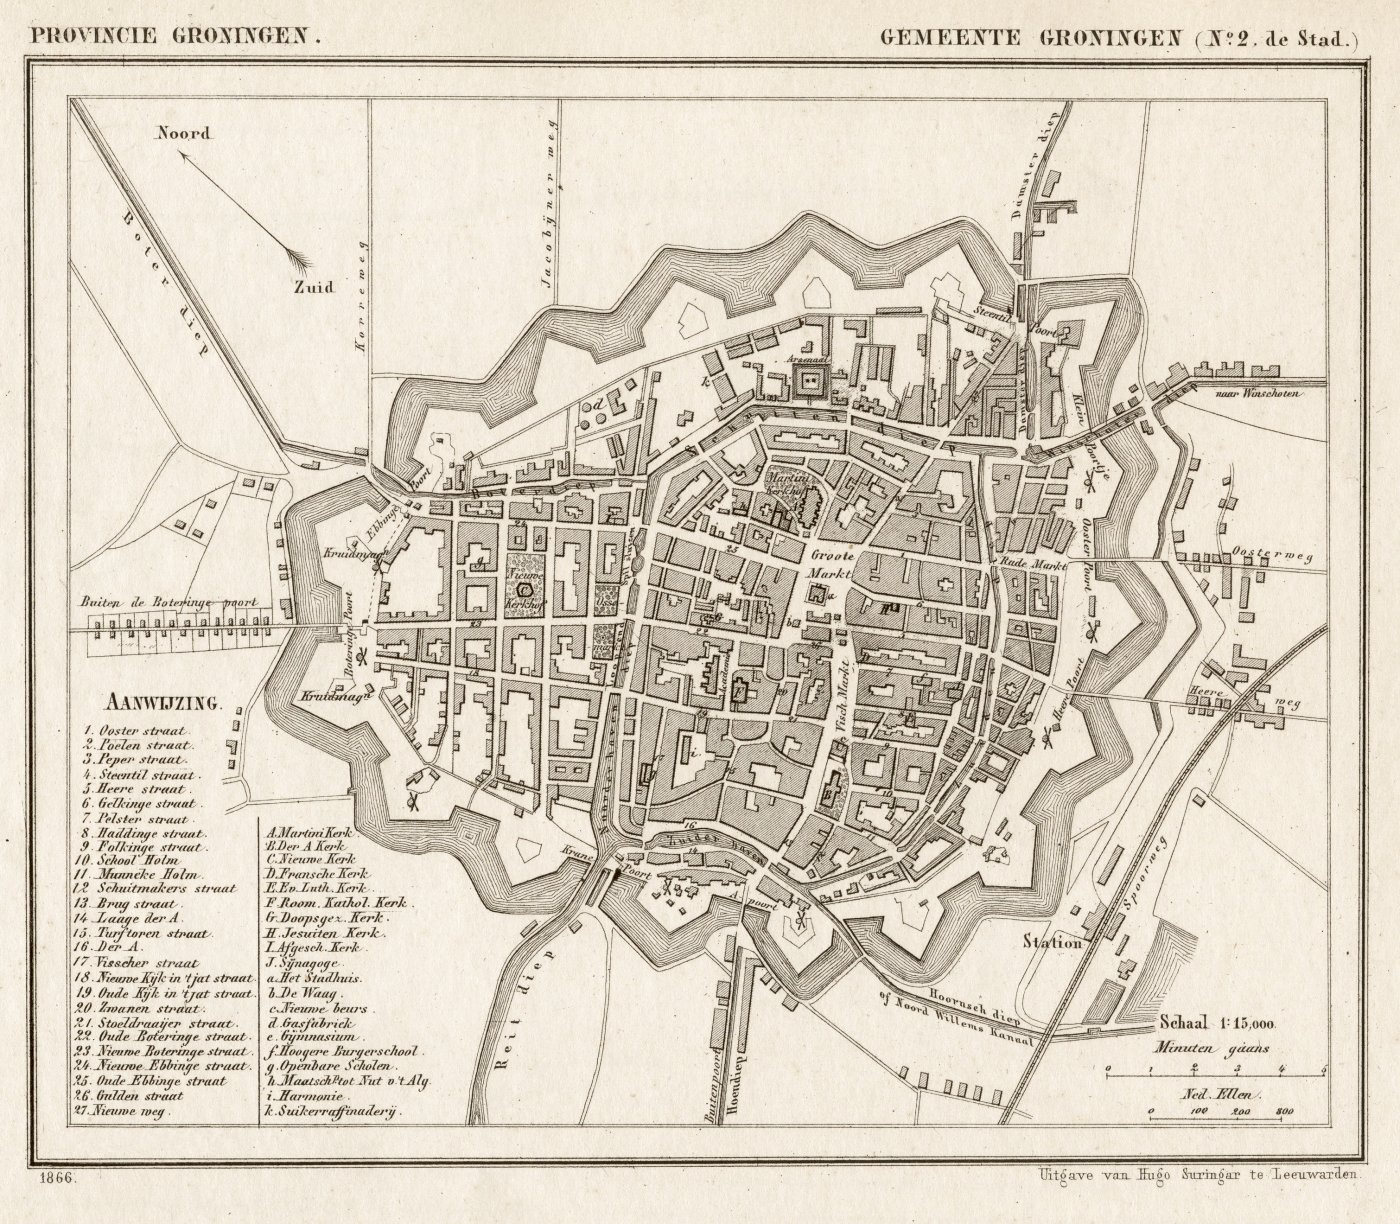 File:Netherlands, Groningen (city), map of 1866.jpg - Wikimedia Commons